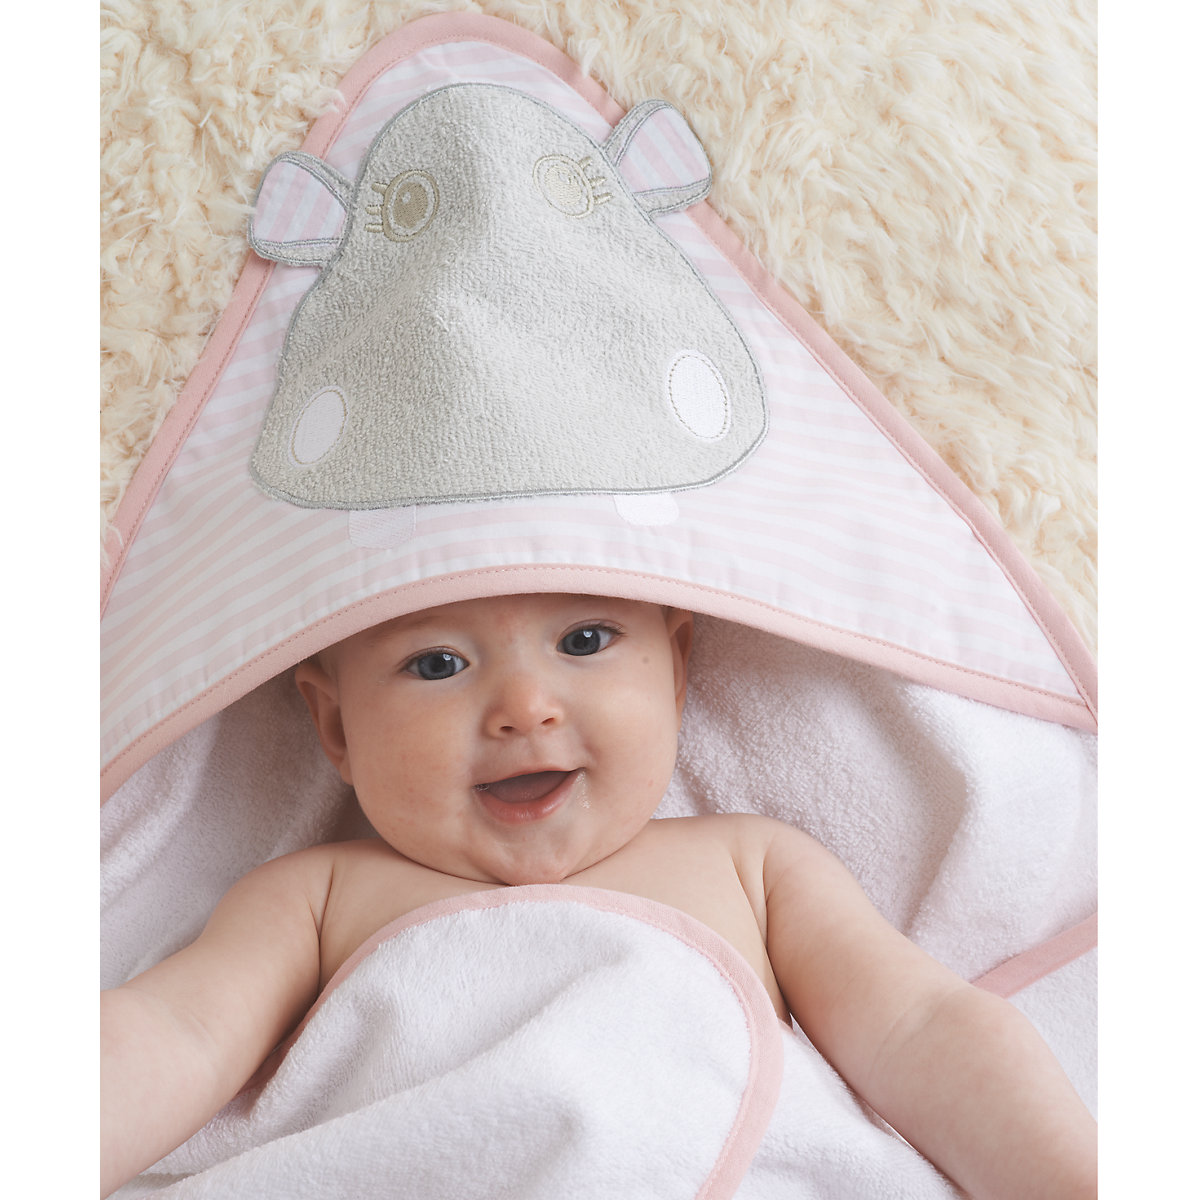 Mothercare Hippo Cuddle 'n' Dry Hooded Towel - Hippo Gifts